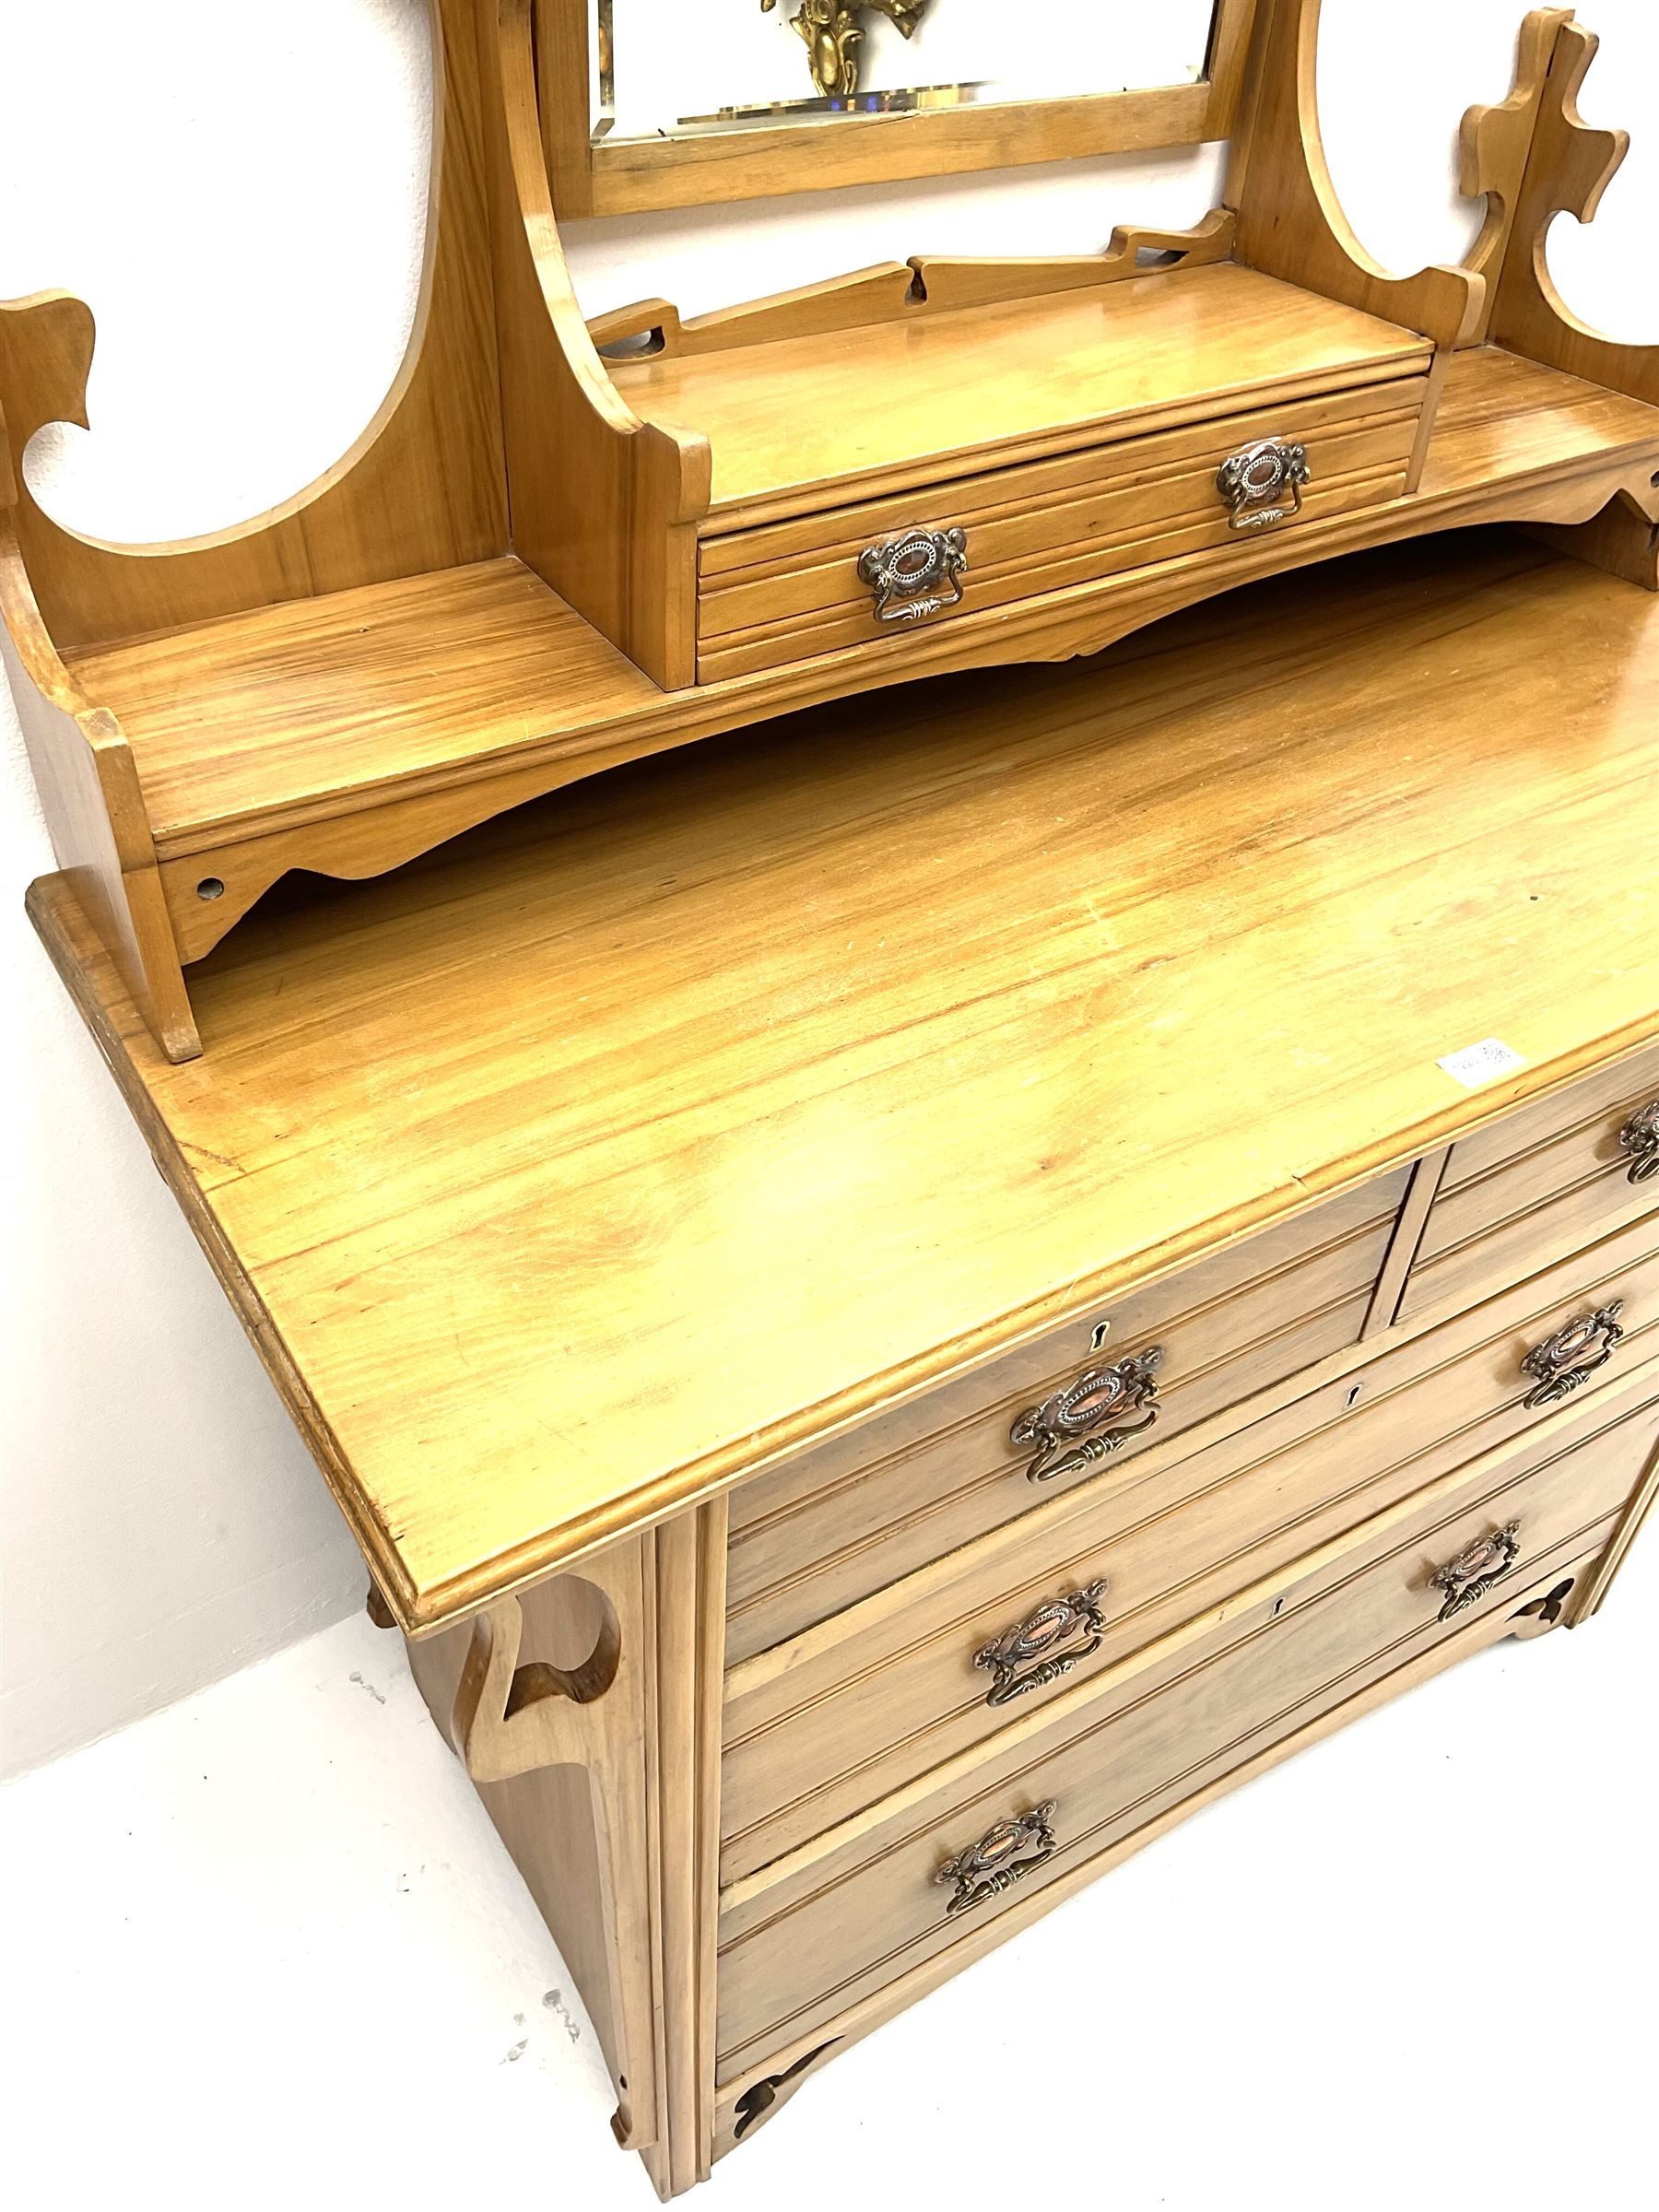 Late Victorian satin walnut dressing chest - Image 2 of 2